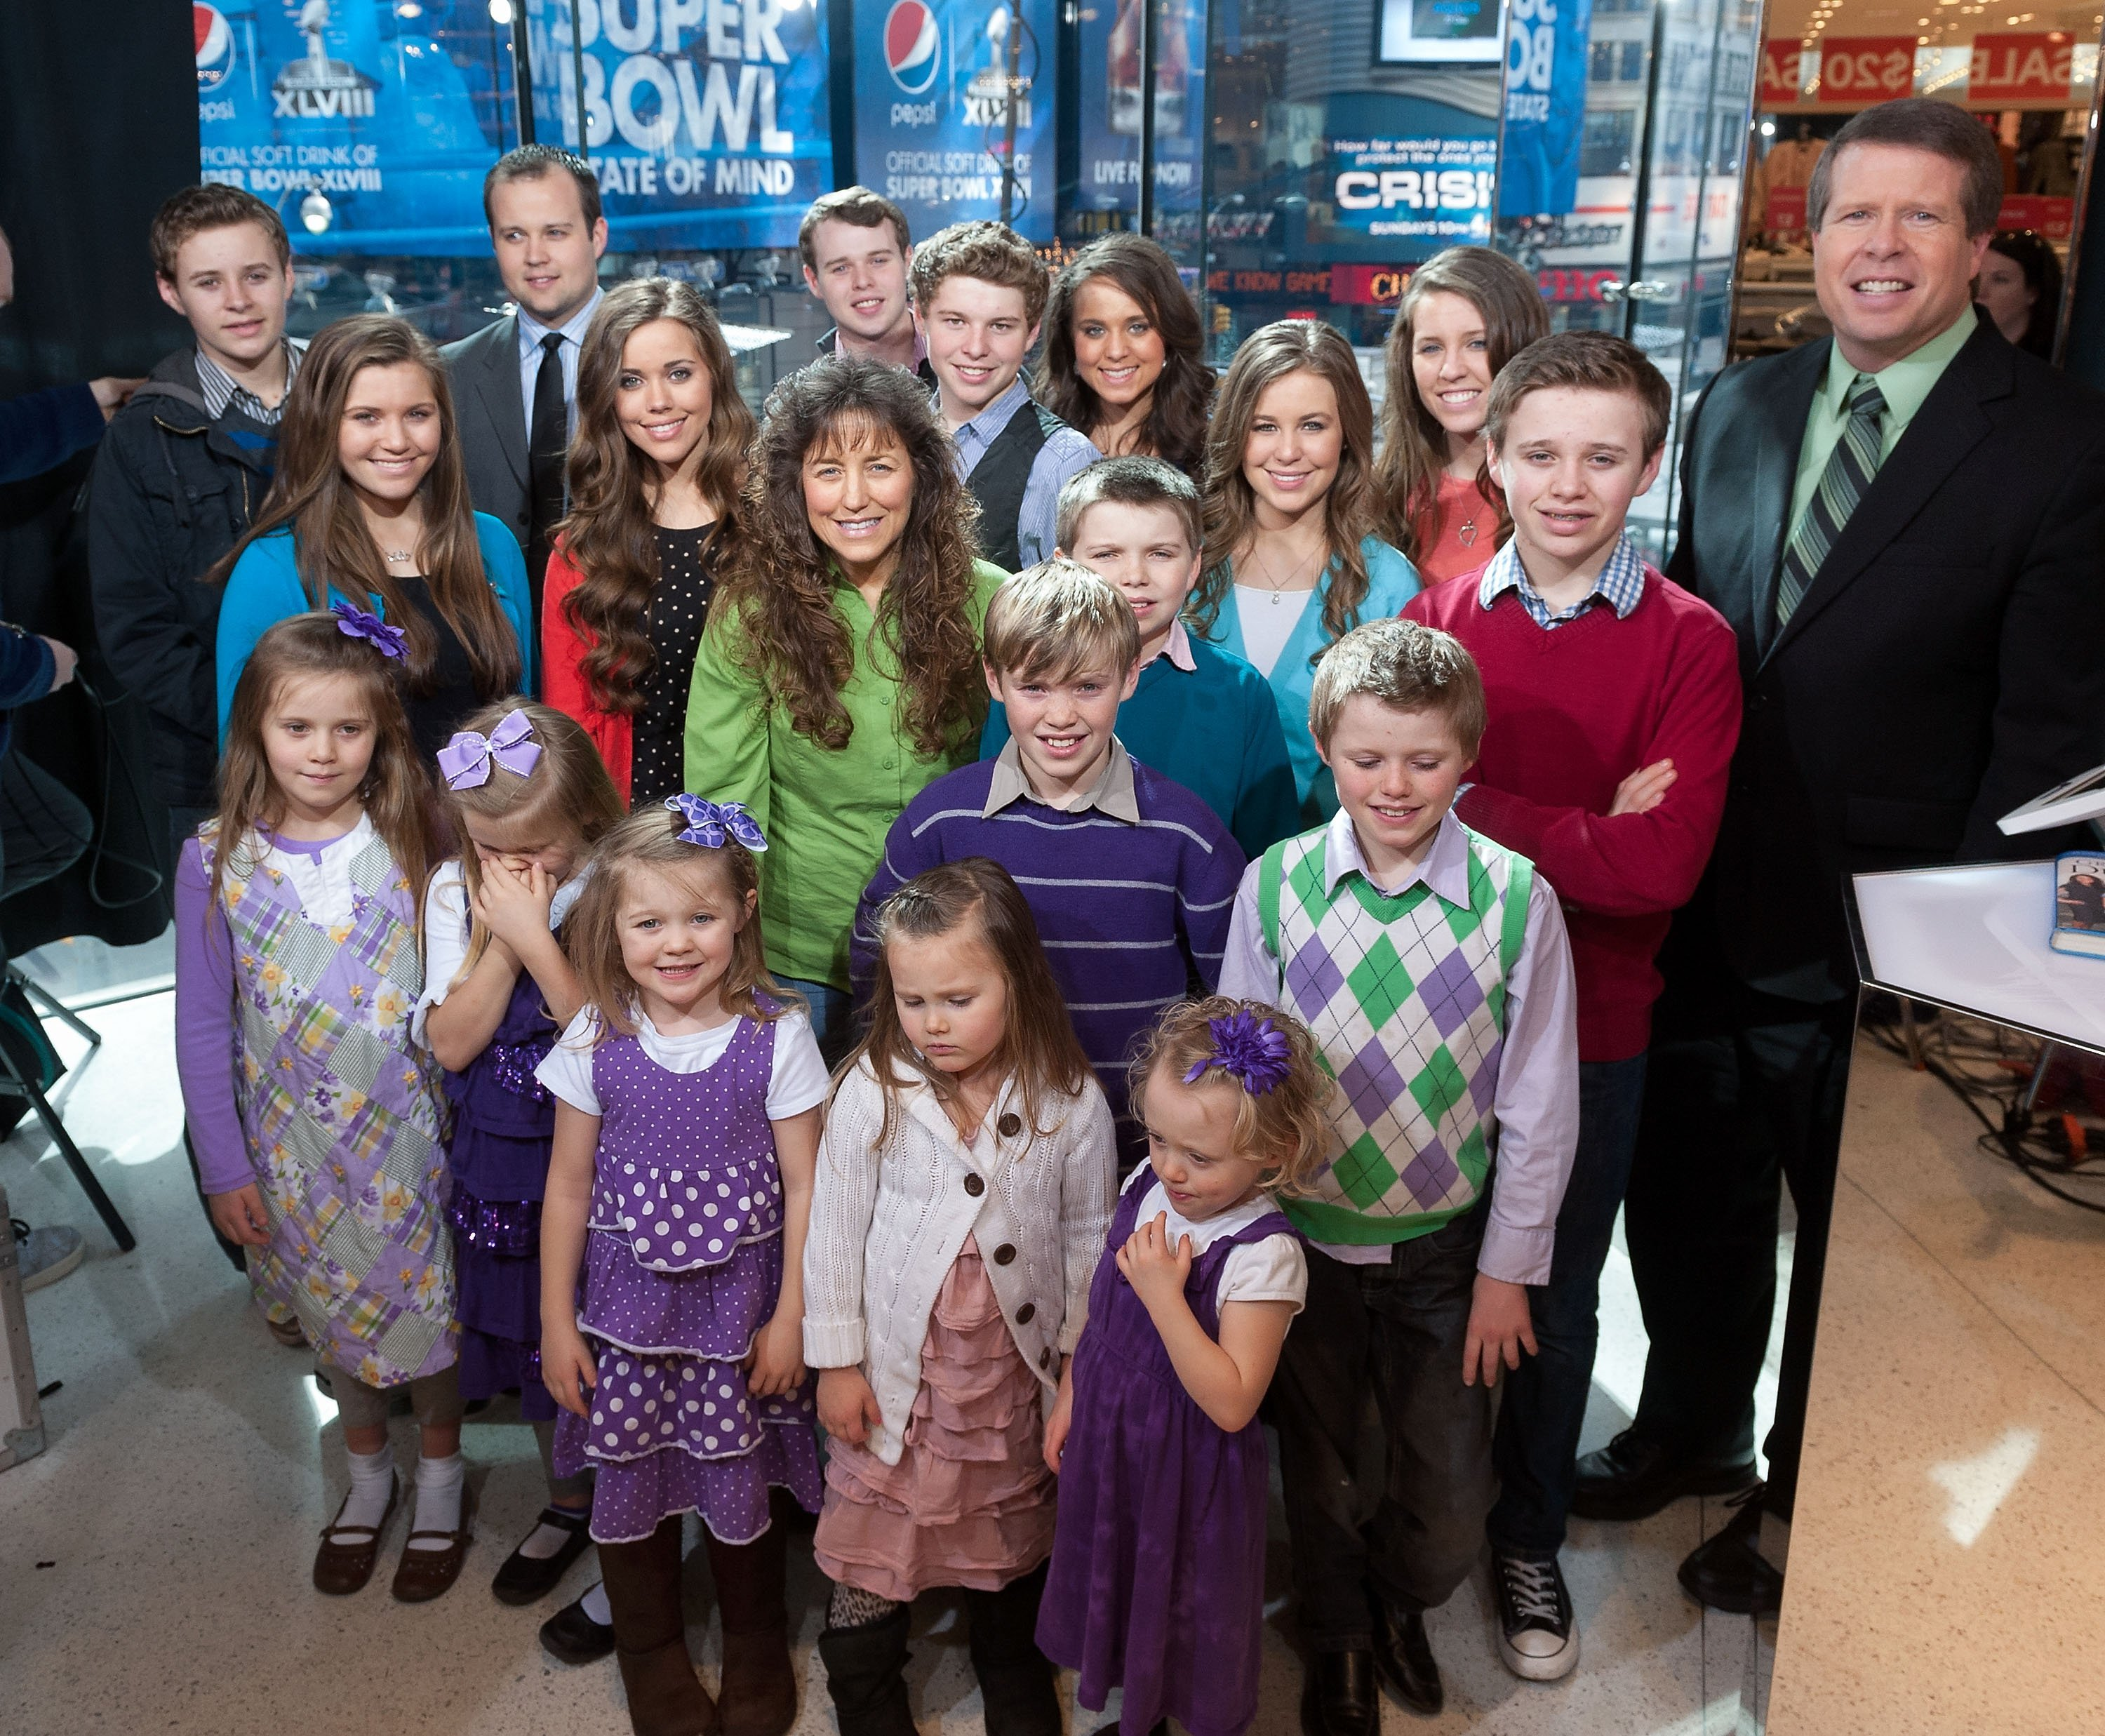 """The Duggar Family visits the """"Extra"""" studio in New York City on March 11, 2014 